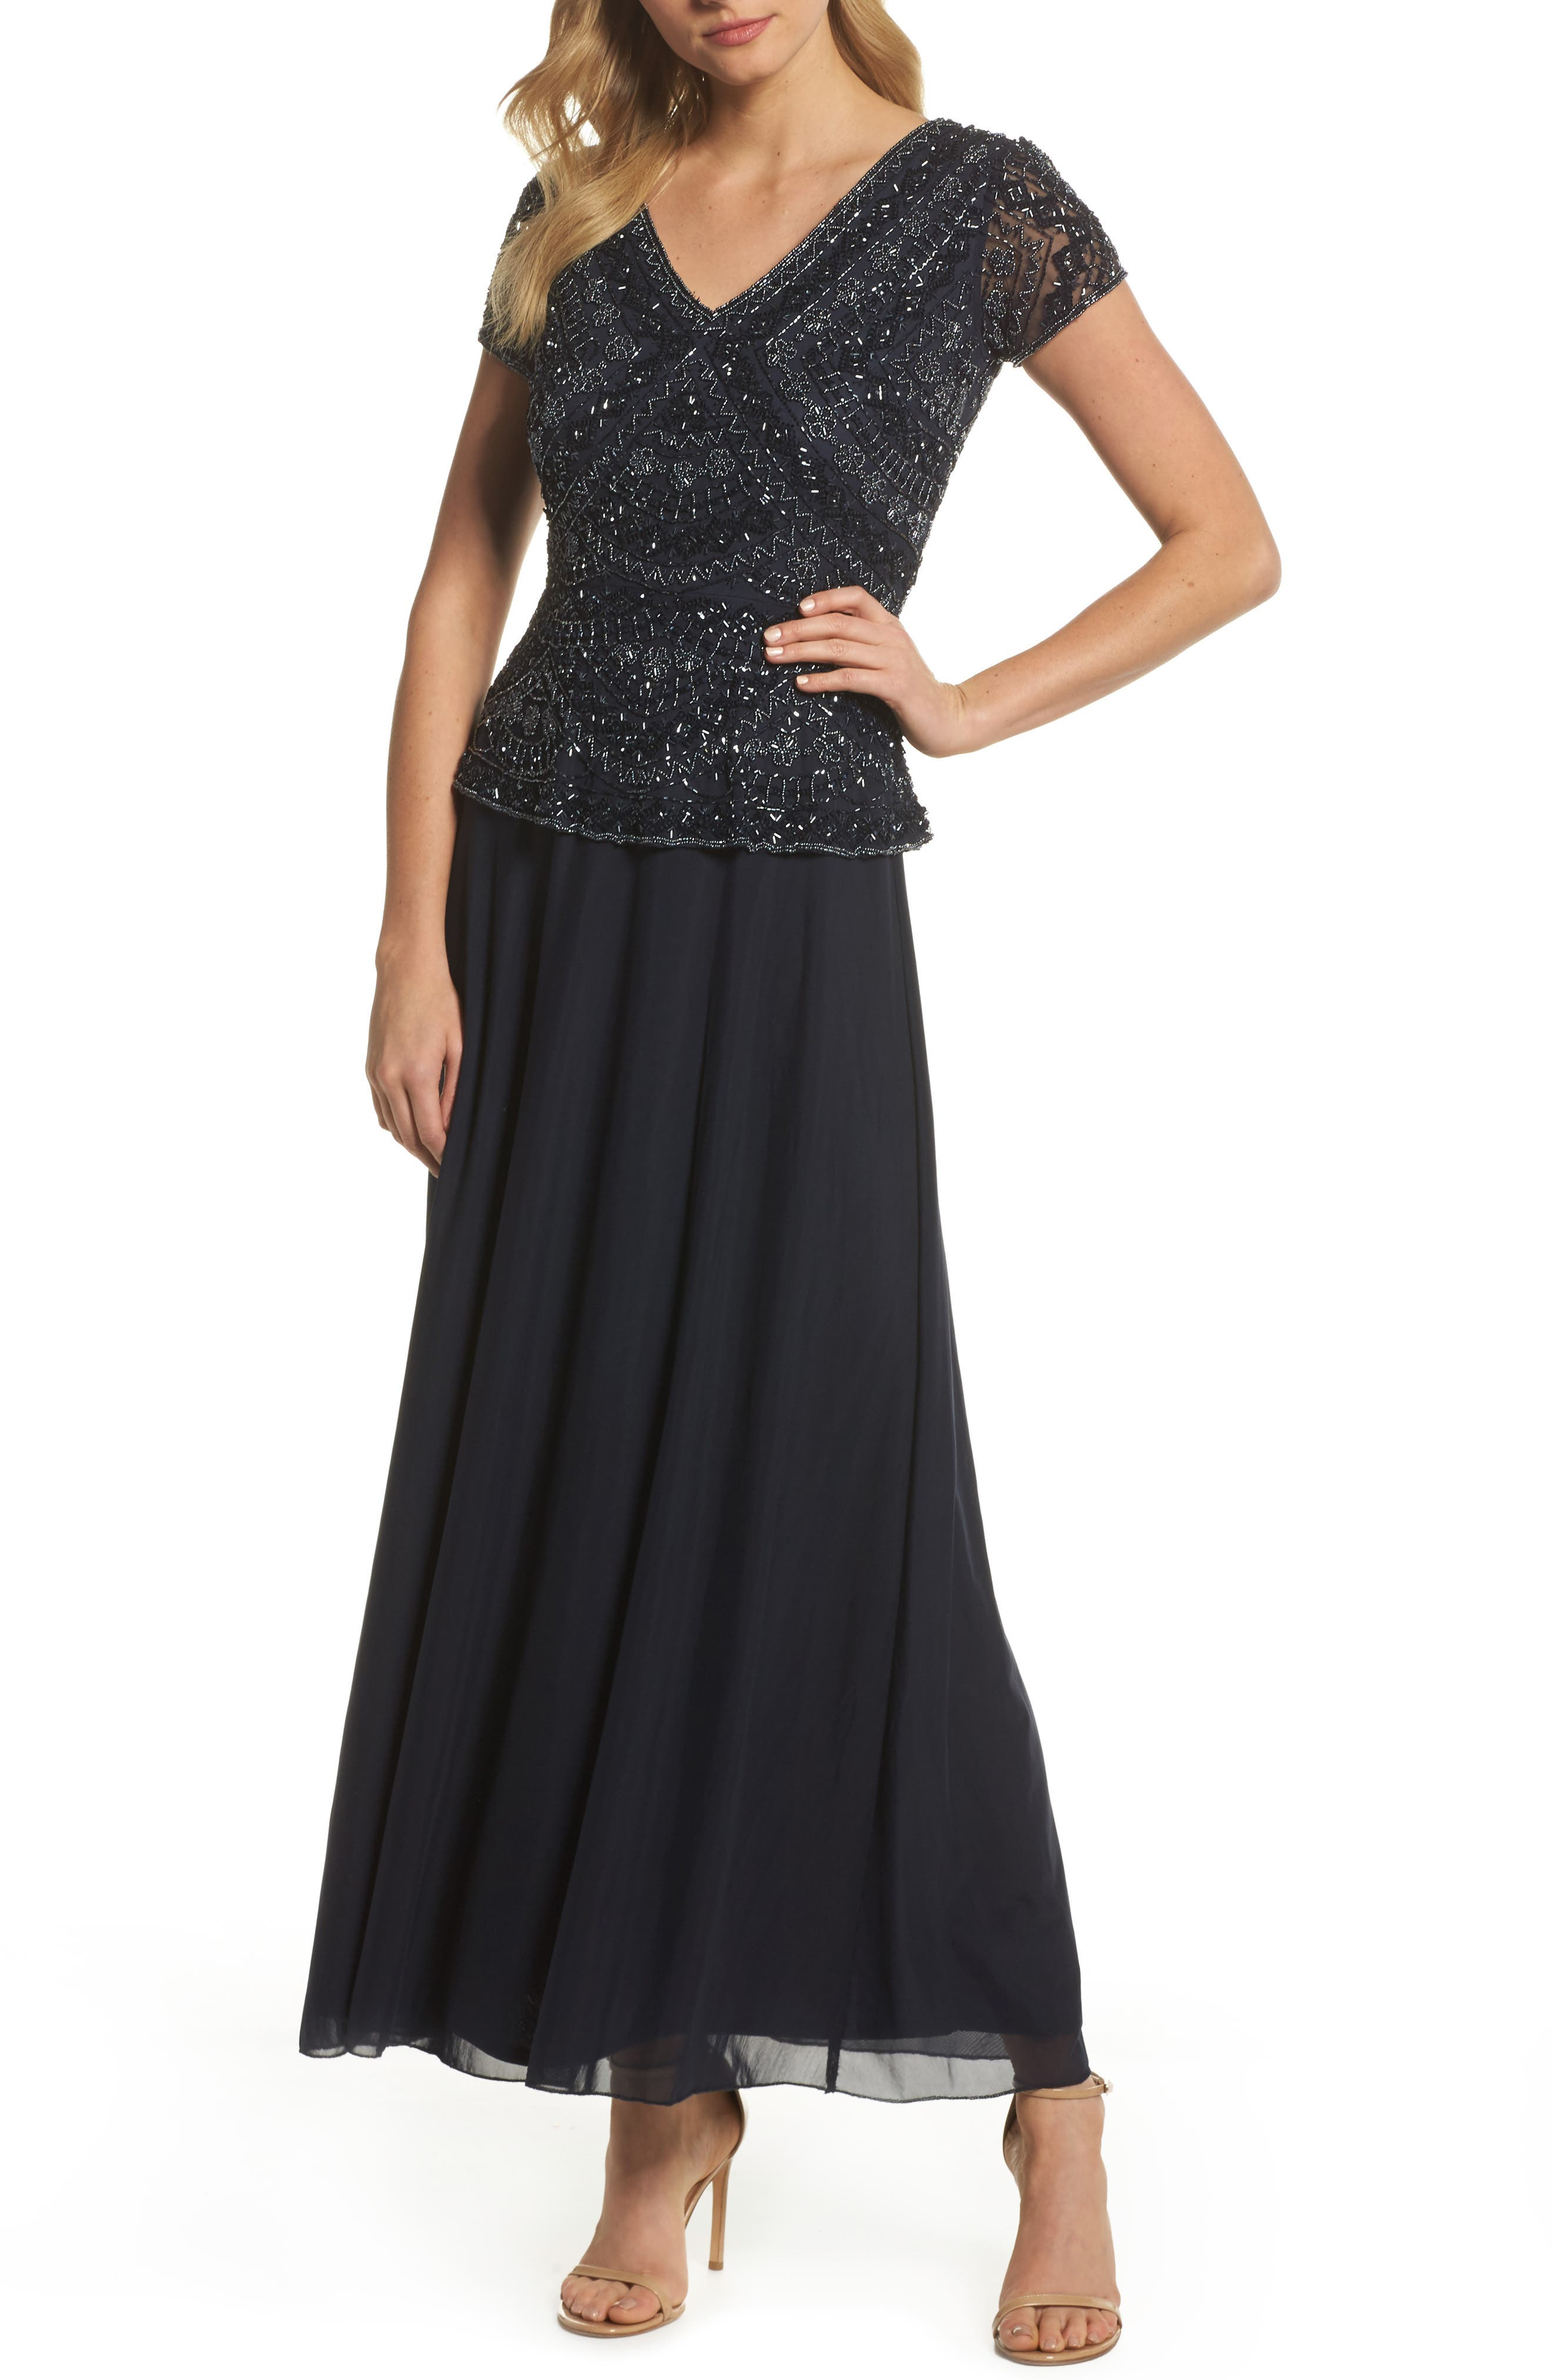 1920s Evening Dresses & Formal Gowns Womens Pisarro Nights Beaded V-Neck Mock Two-Piece Gown $218.00 AT vintagedancer.com